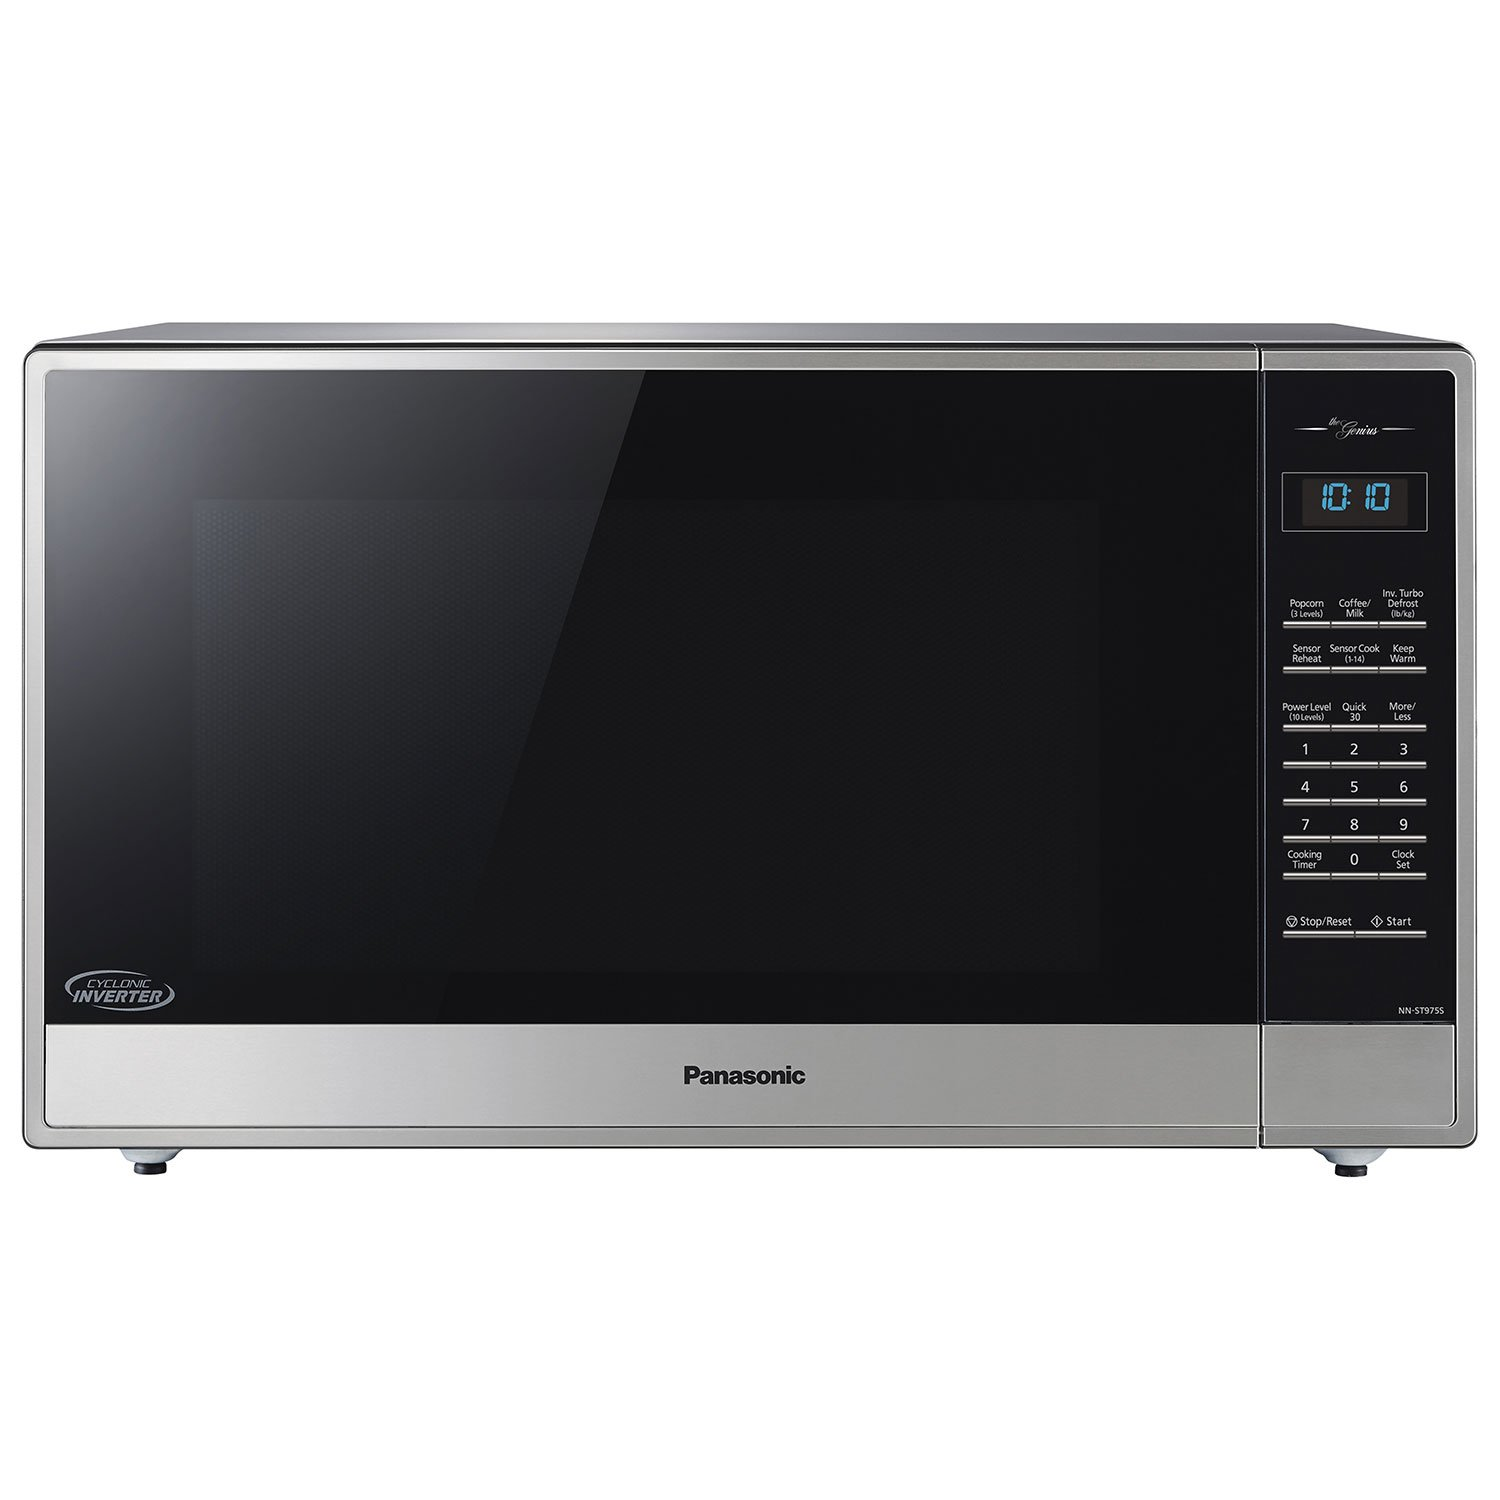 Panasonic NN-ST975S 2.2 Cu. Ft. Built-In/Countertop Cyclonic Wave Microwave Oven w/Inverter Technology - Stainless Steel (Renewed)